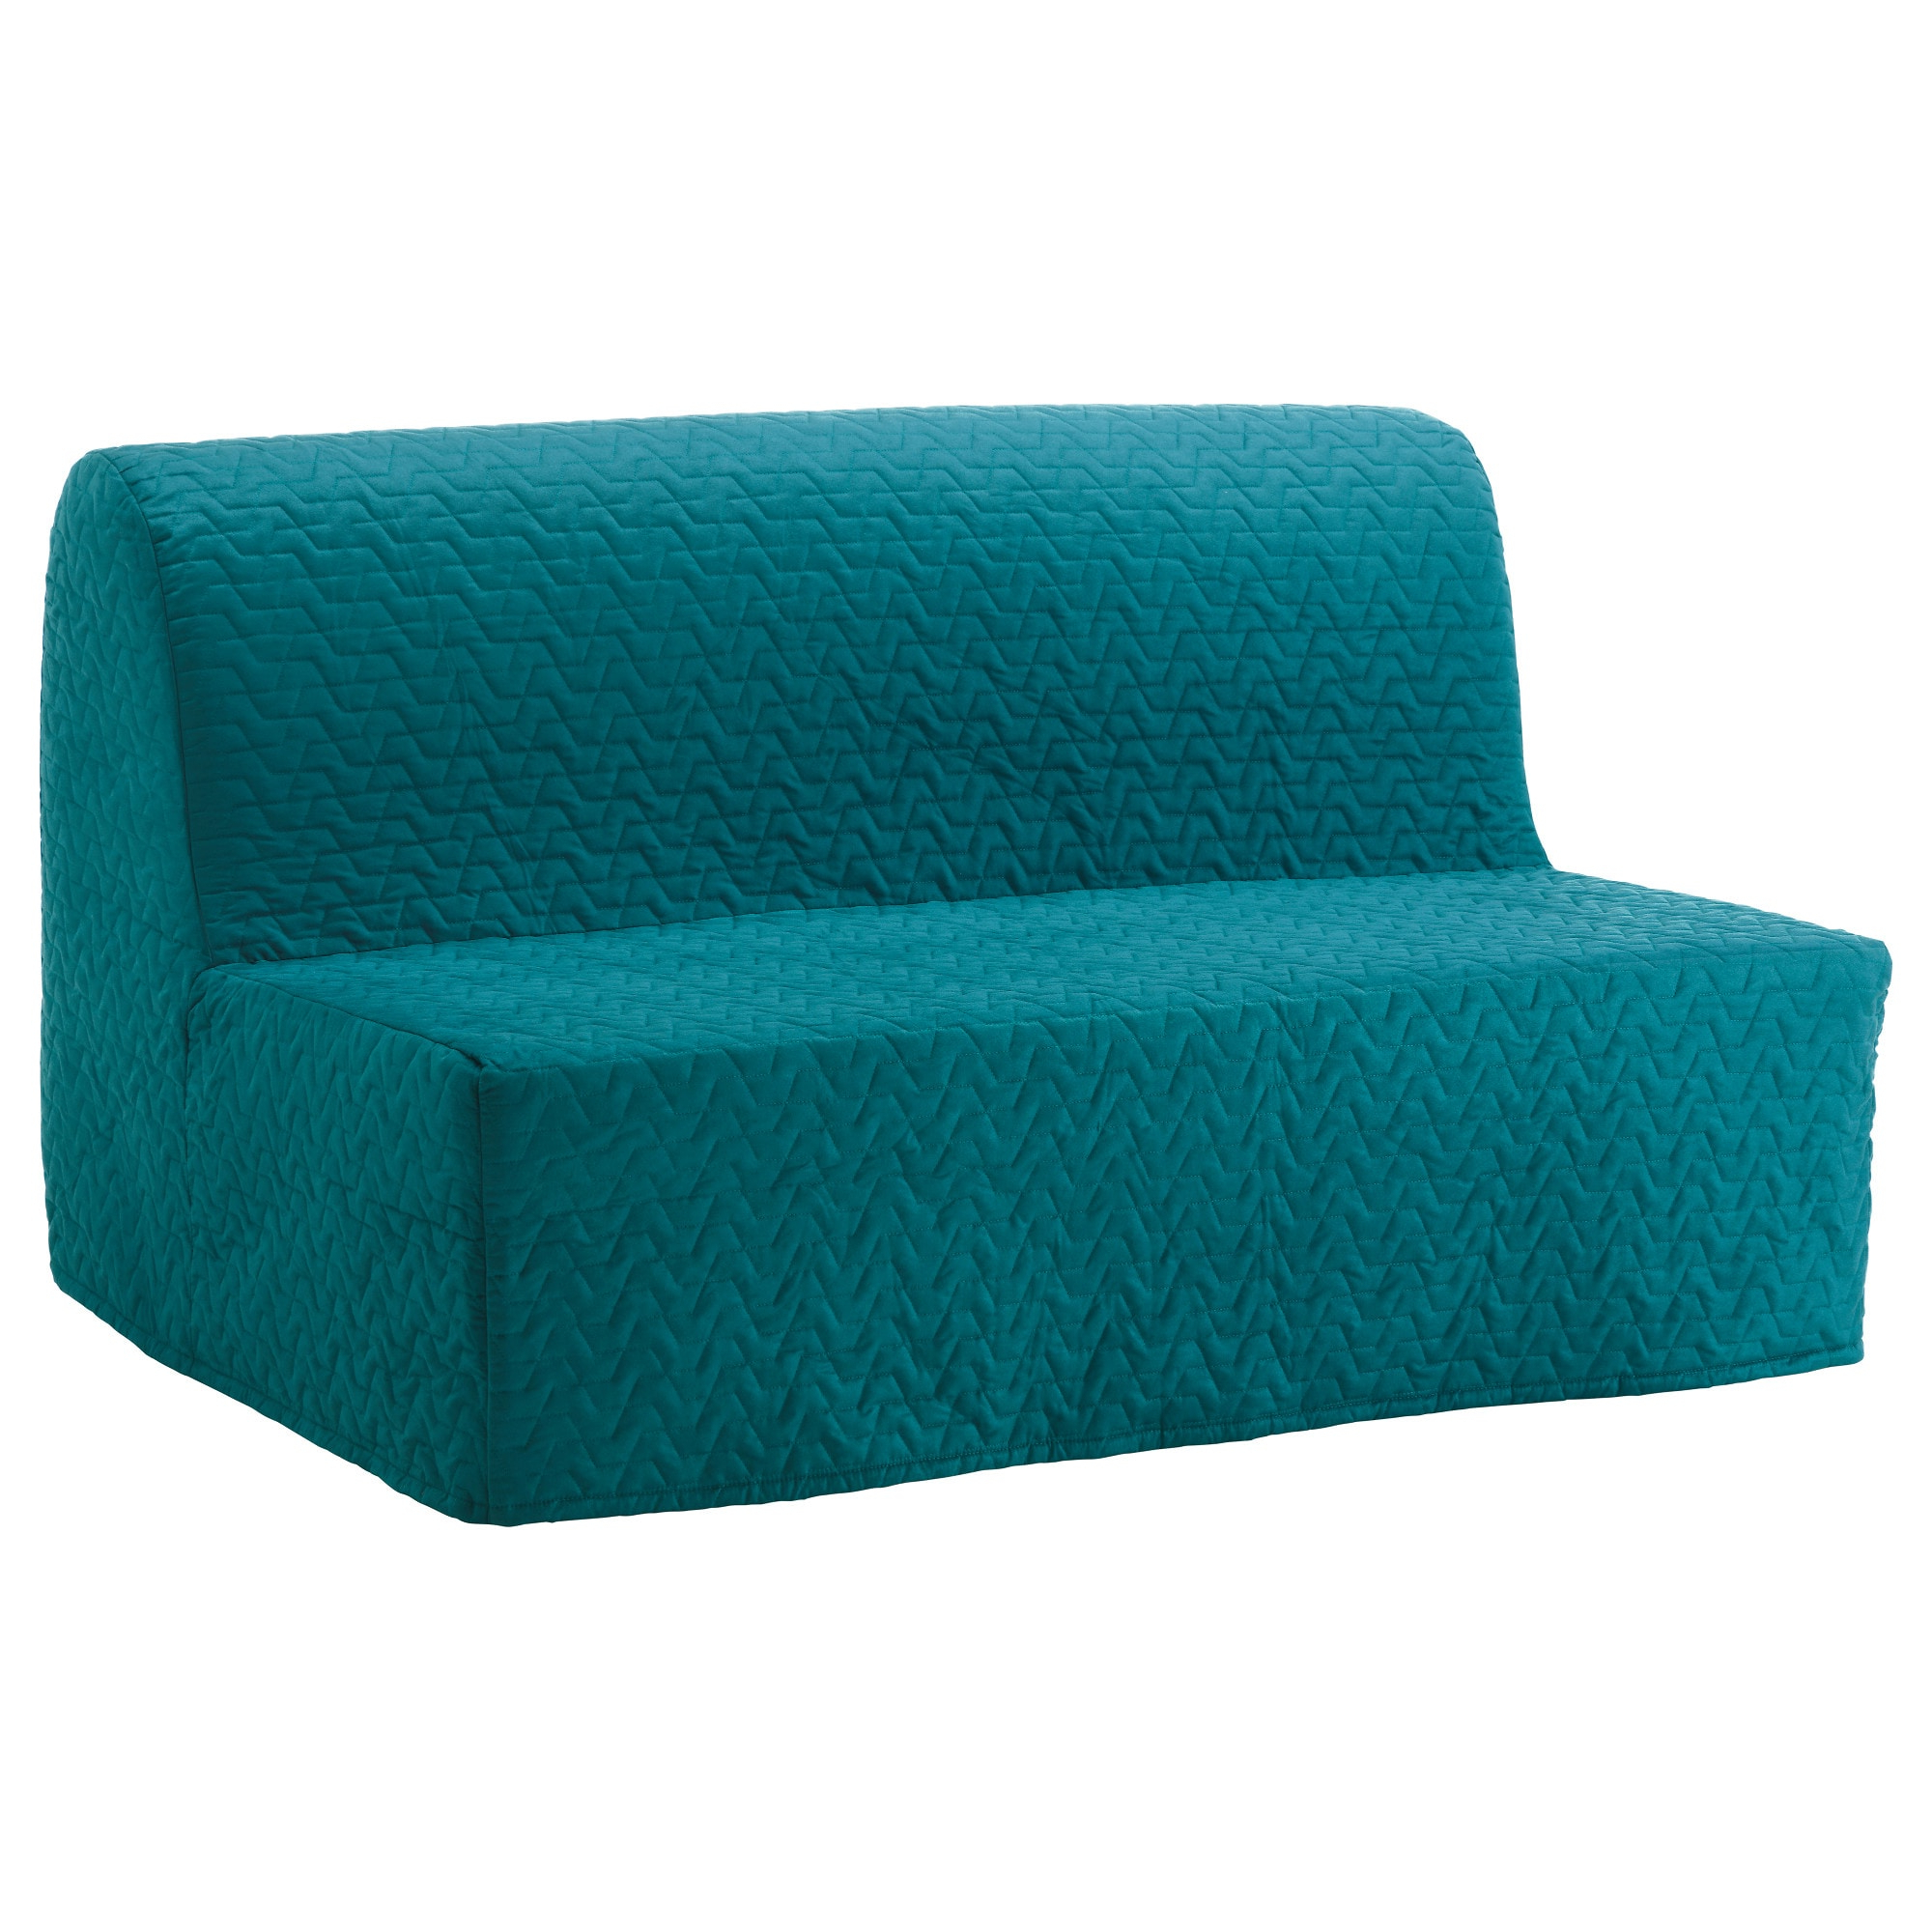 Favorite Single Sofa Bed Chairs In Sofa Beds – Corner Sofa Beds & Futons (View 18 of 20)